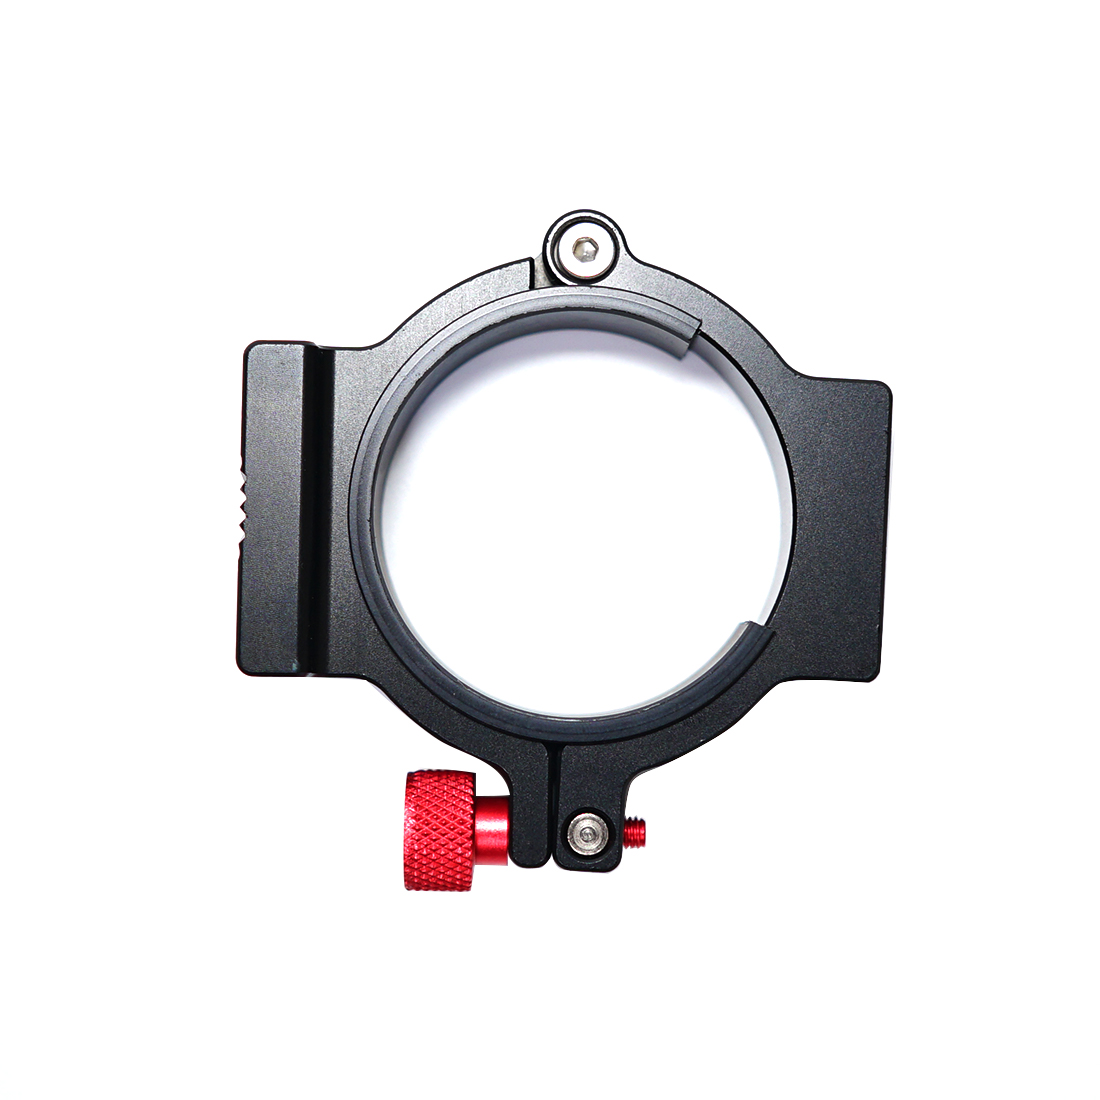 BGNing 3-Axis NEW Stabilizer Screw Expansion Ring Extension for Zhiyun Crane 2